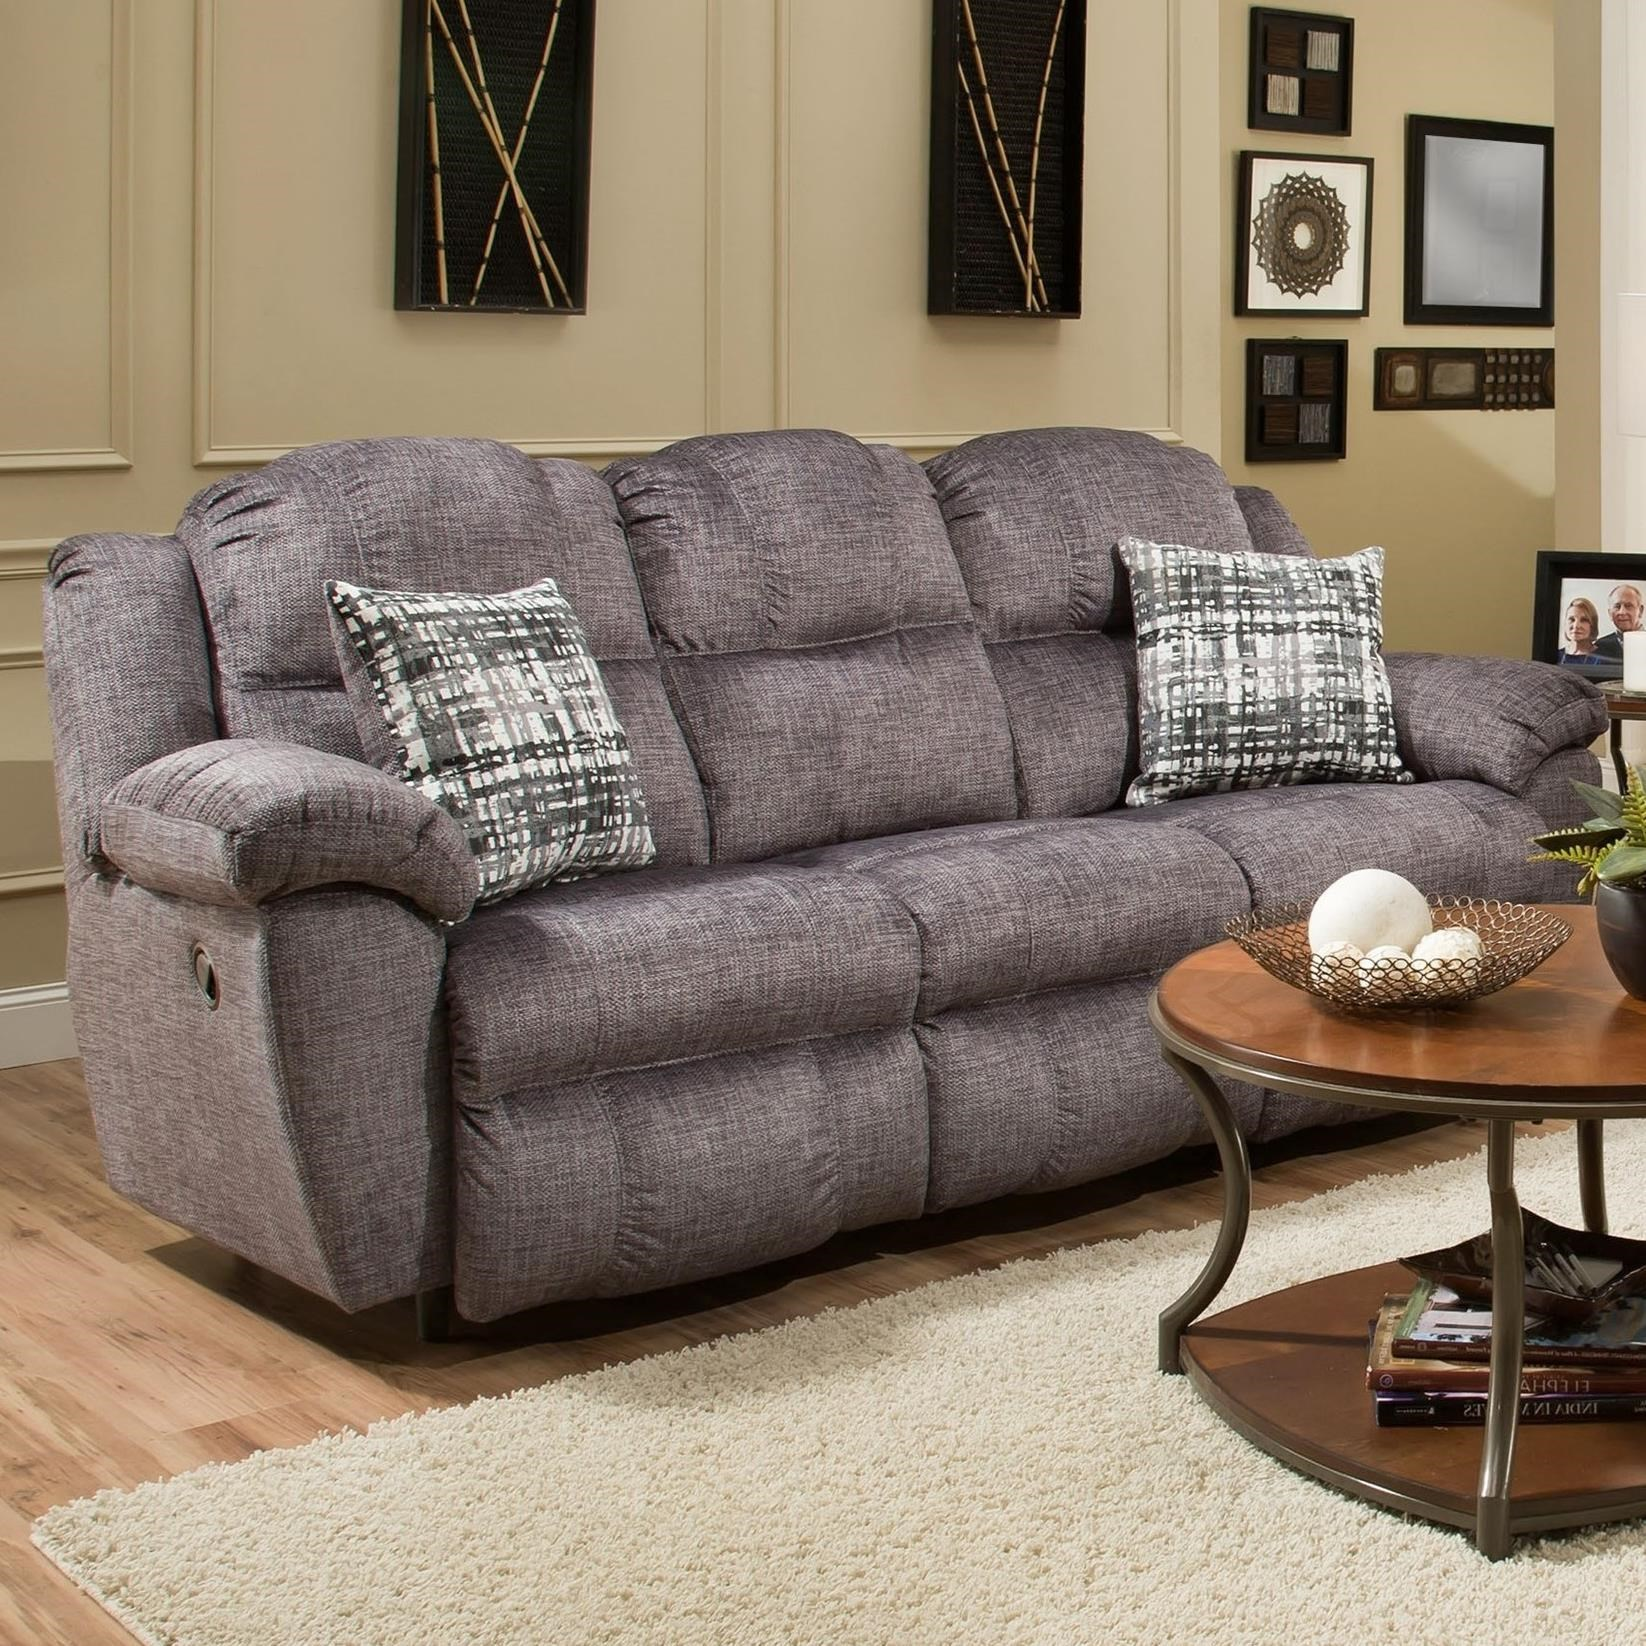 franklin victory 79342 83 power reclining sofa with usb charging rh johnvschultz com franklin reclining sofa review franklin reclining sofa with massage